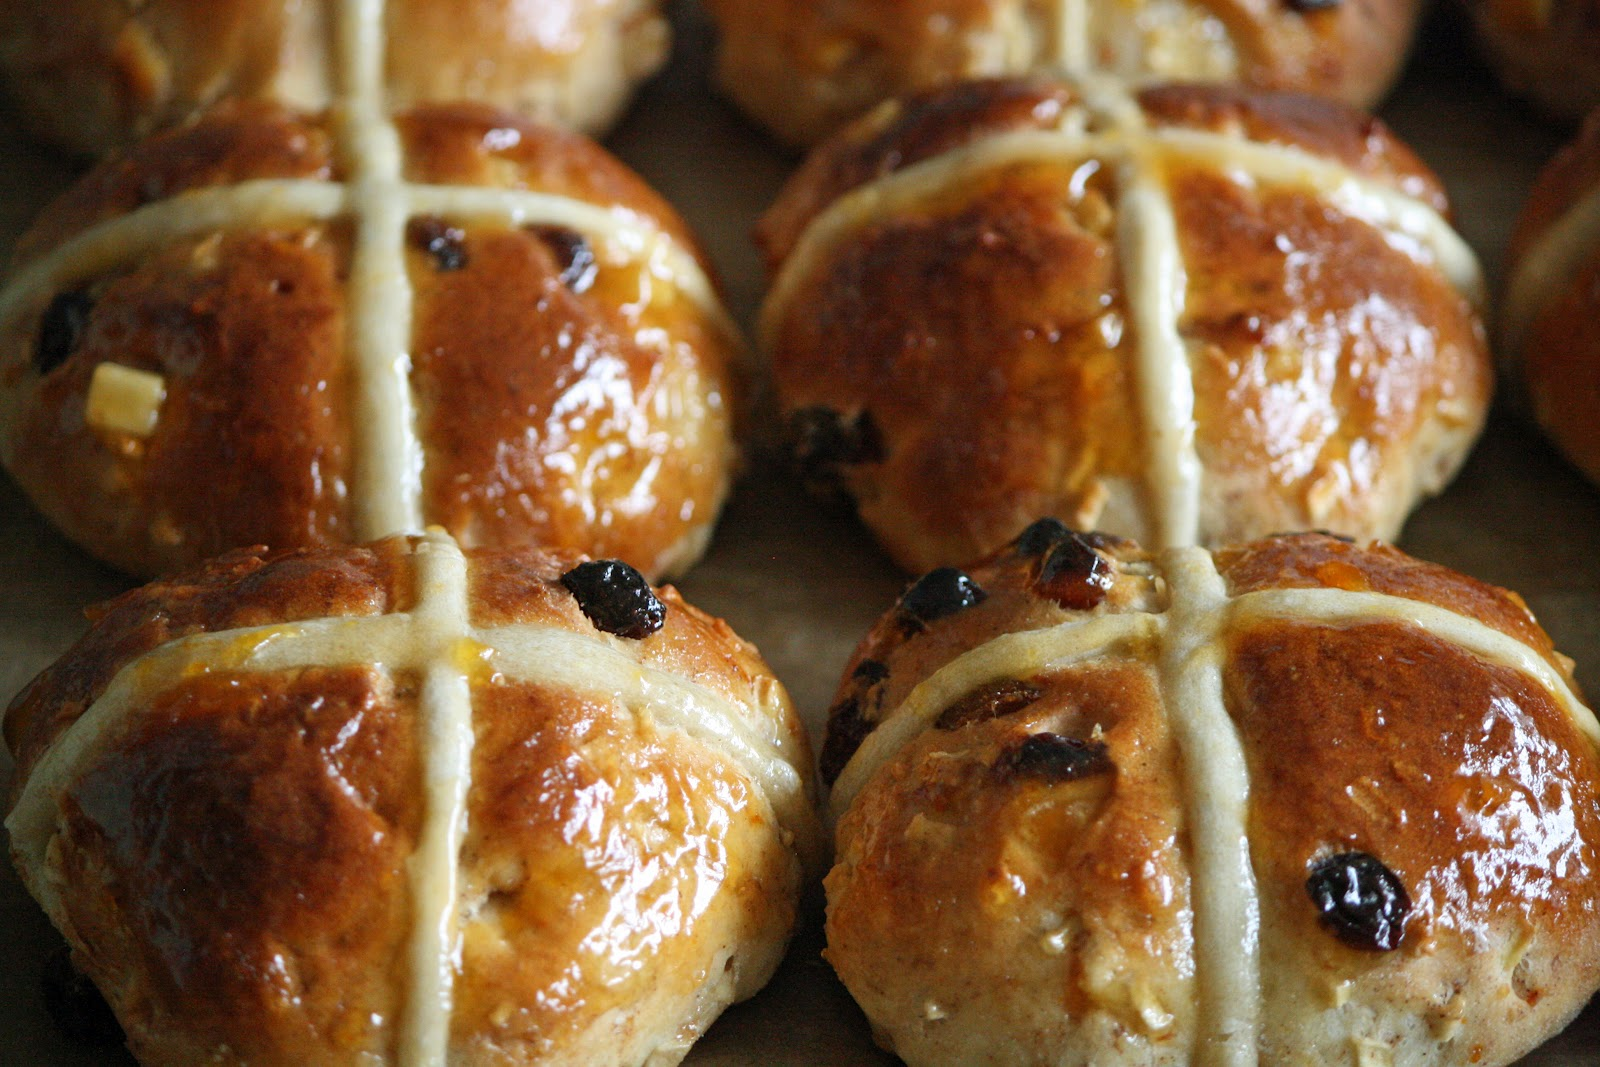 lauralovescakes...: Hot Cross Buns & Traditional Easter ...